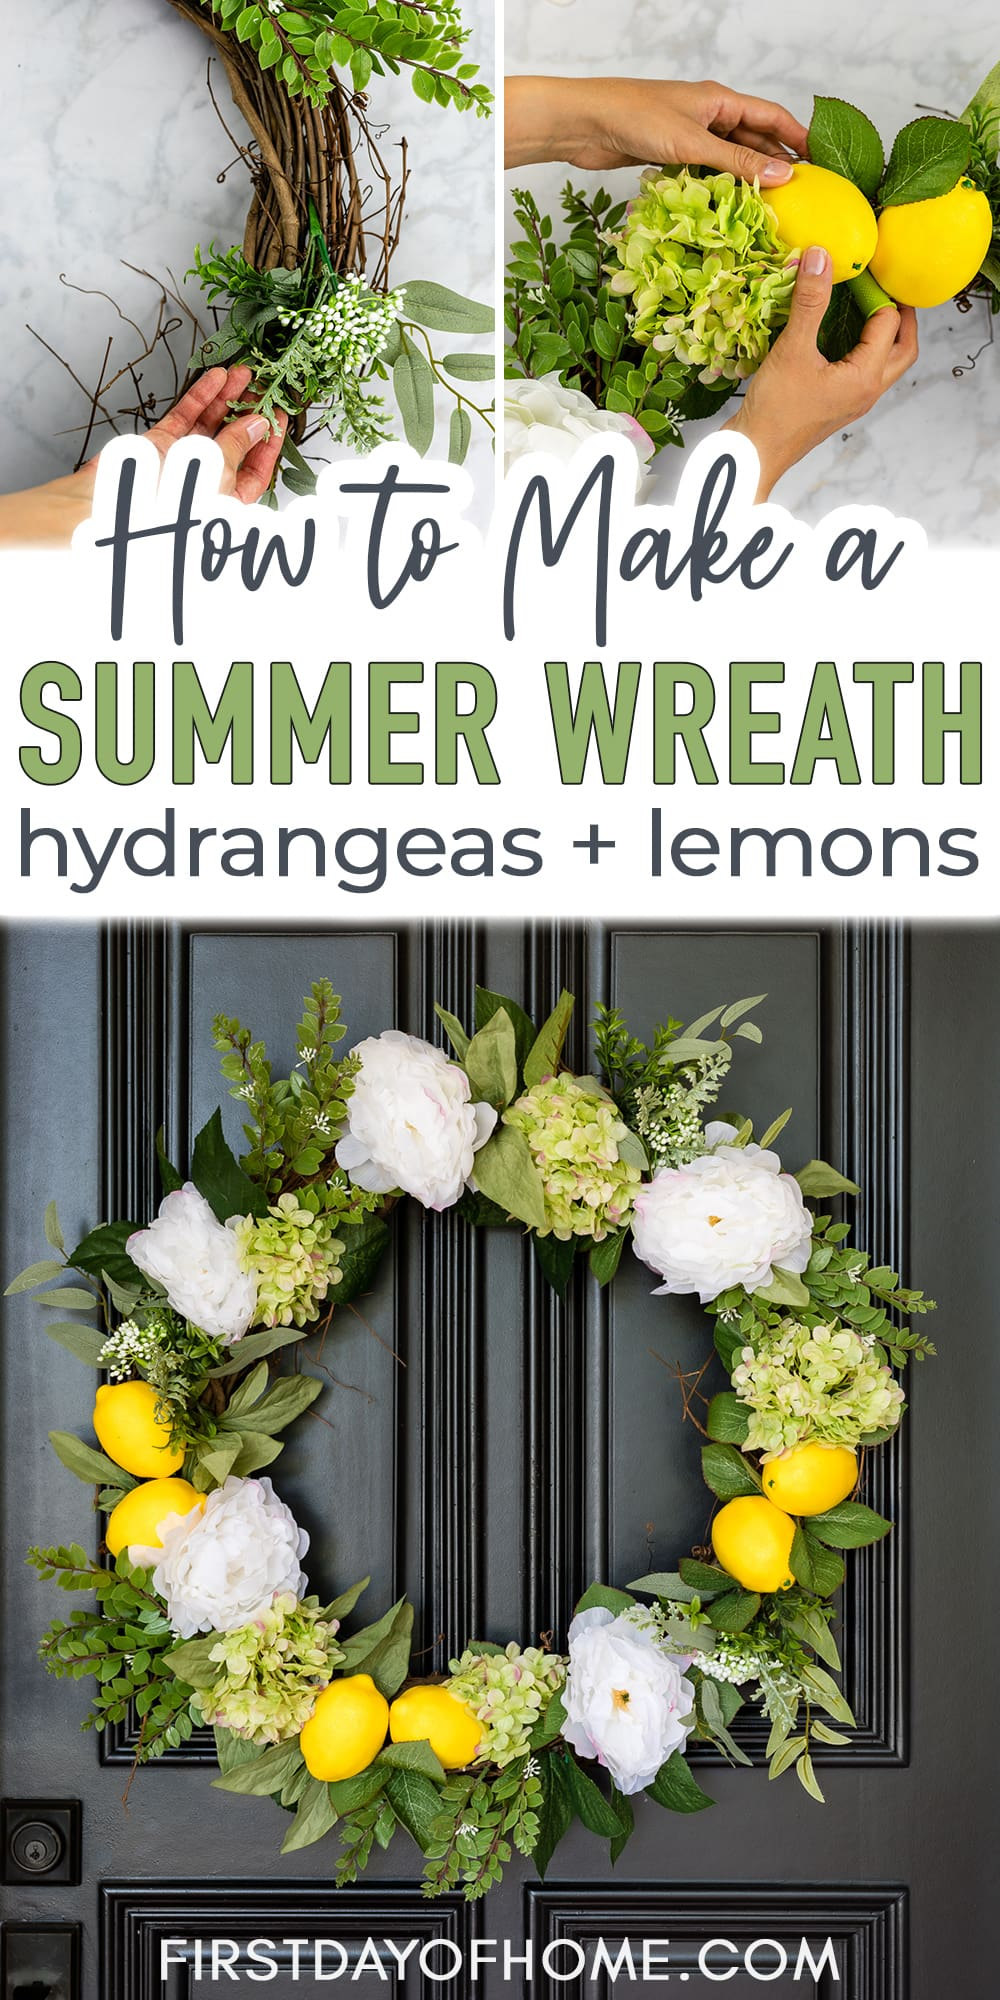 """Wreath with lemons, hydrangeas, peonies and greenery with steps showing how to make it and text overlay reading """"How to Make a Summer Wreath - Hydrangeas + Lemnons"""""""